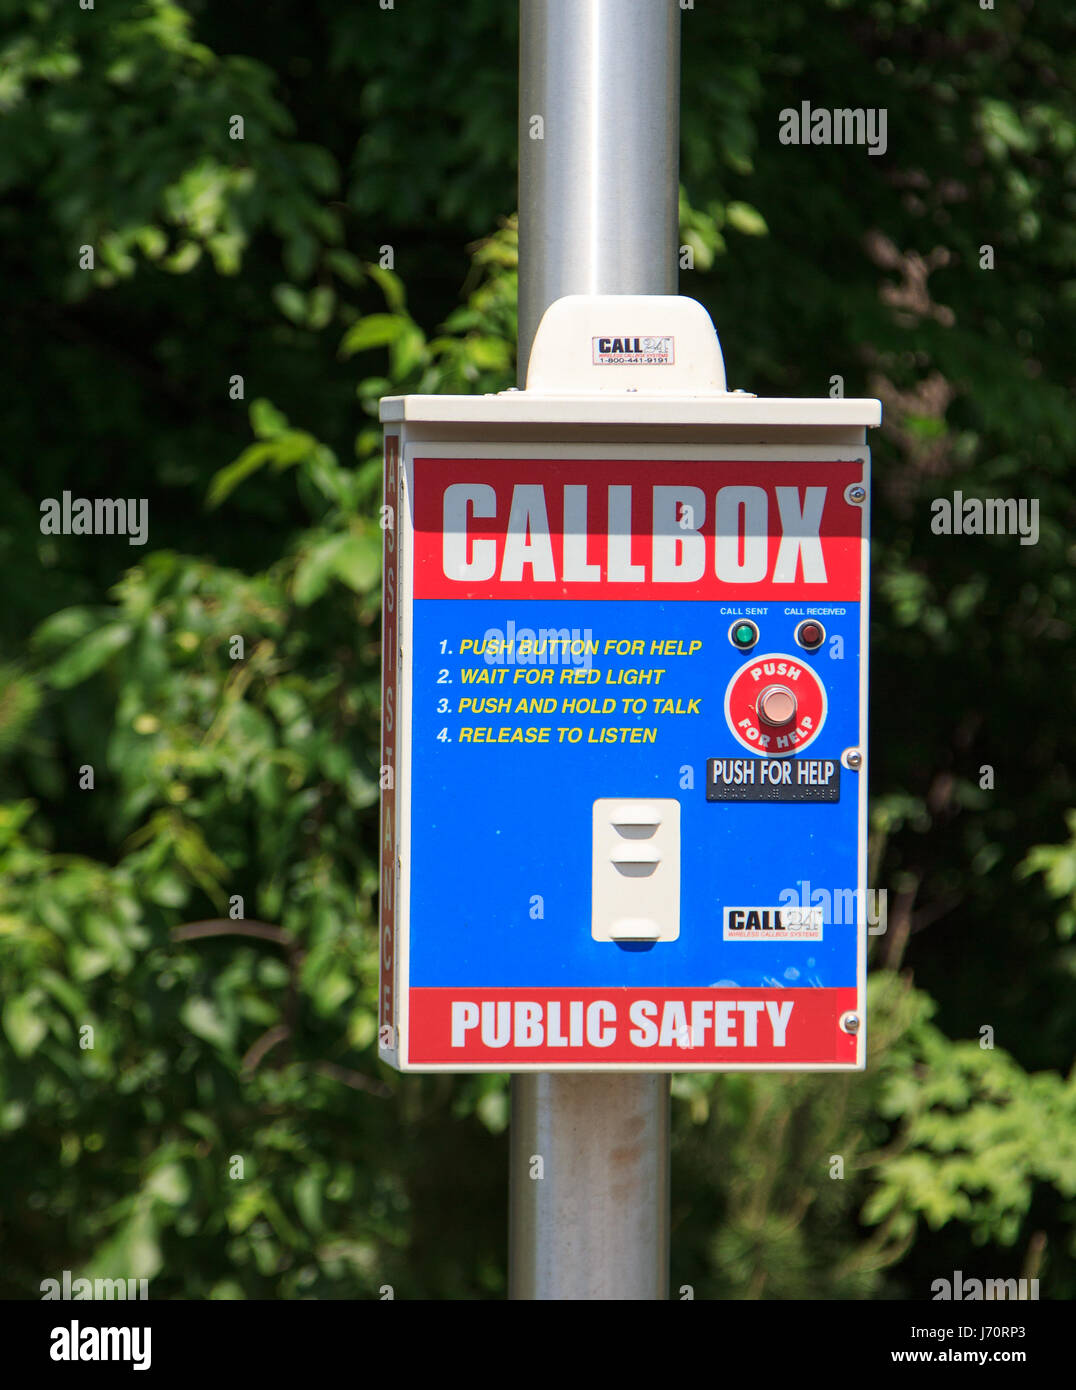 parking lot call box for emergency alarm public safety - Stock Image